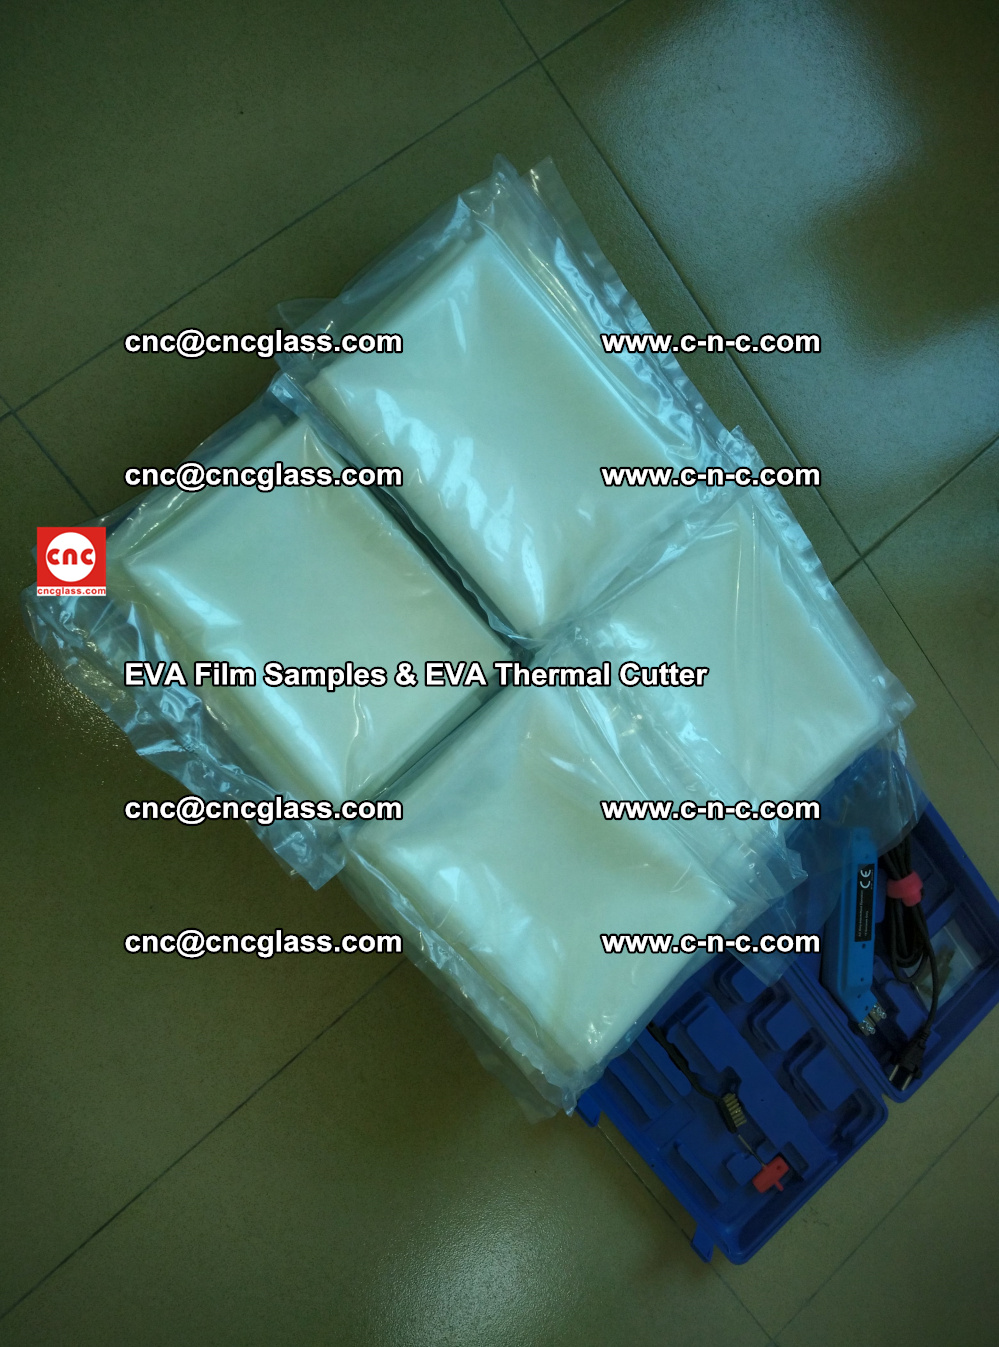 EVAFORCE SUPER CLEAR EVA Film Samples and EVA Thermal Cutter (40)